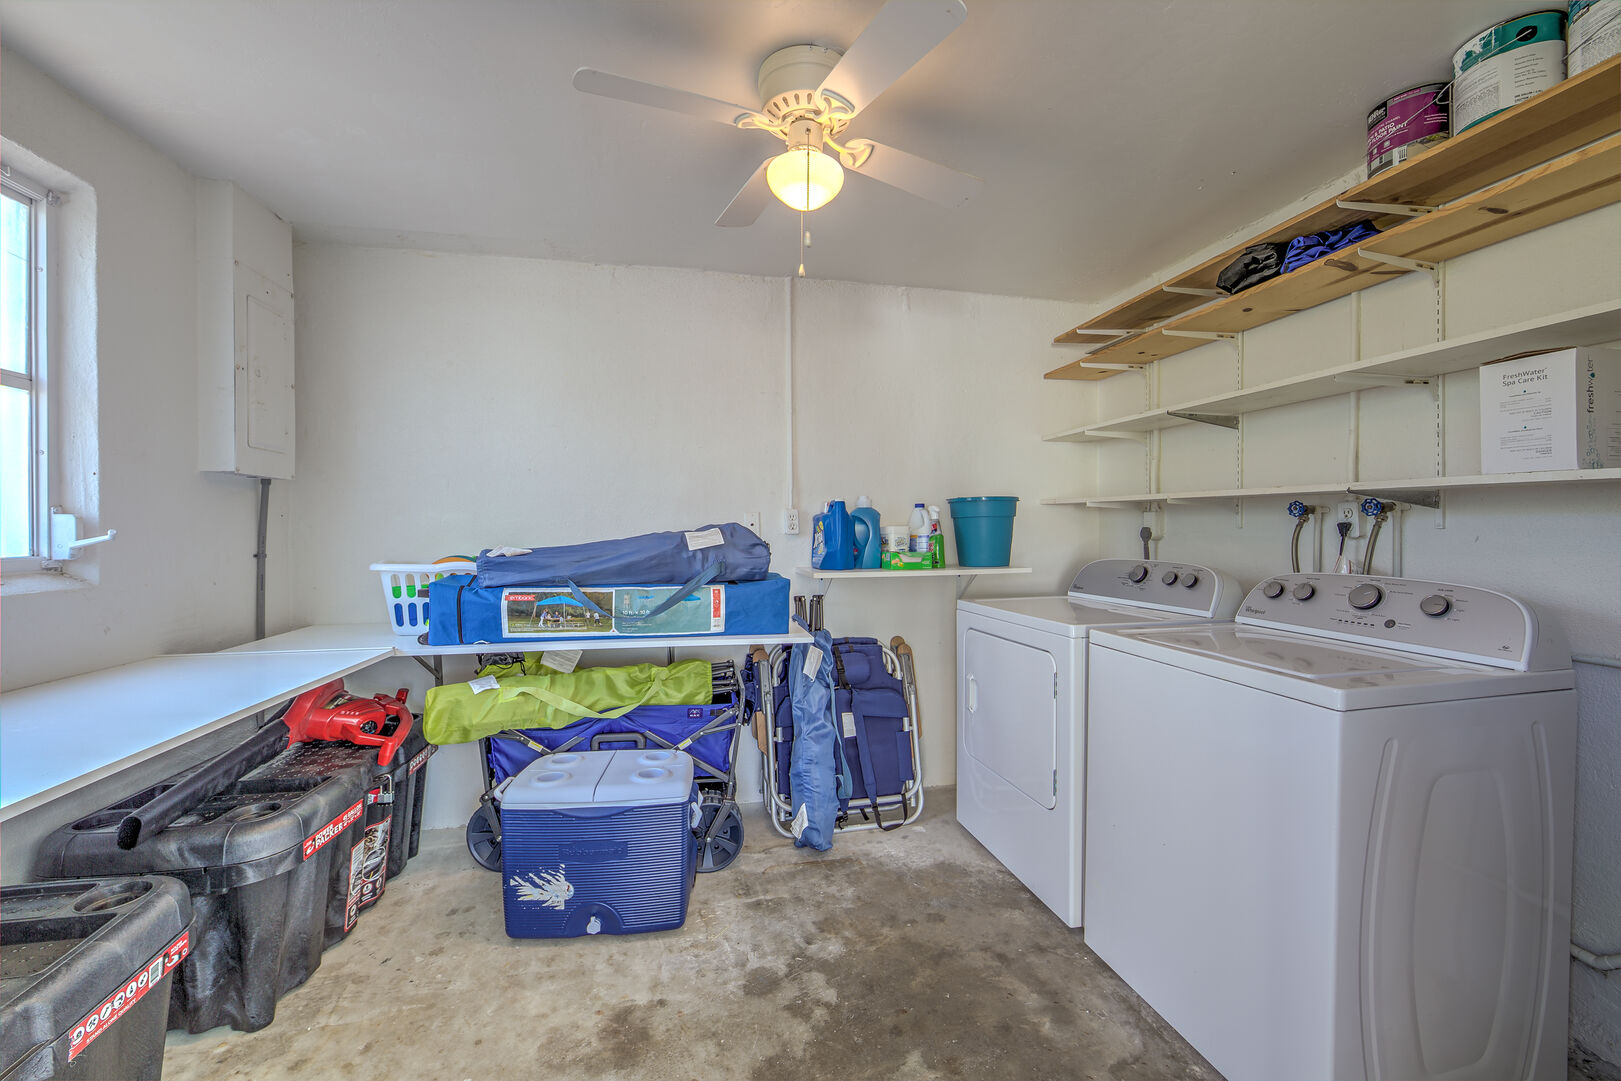 Vacation Homes in Fort Myers with Large laundry room